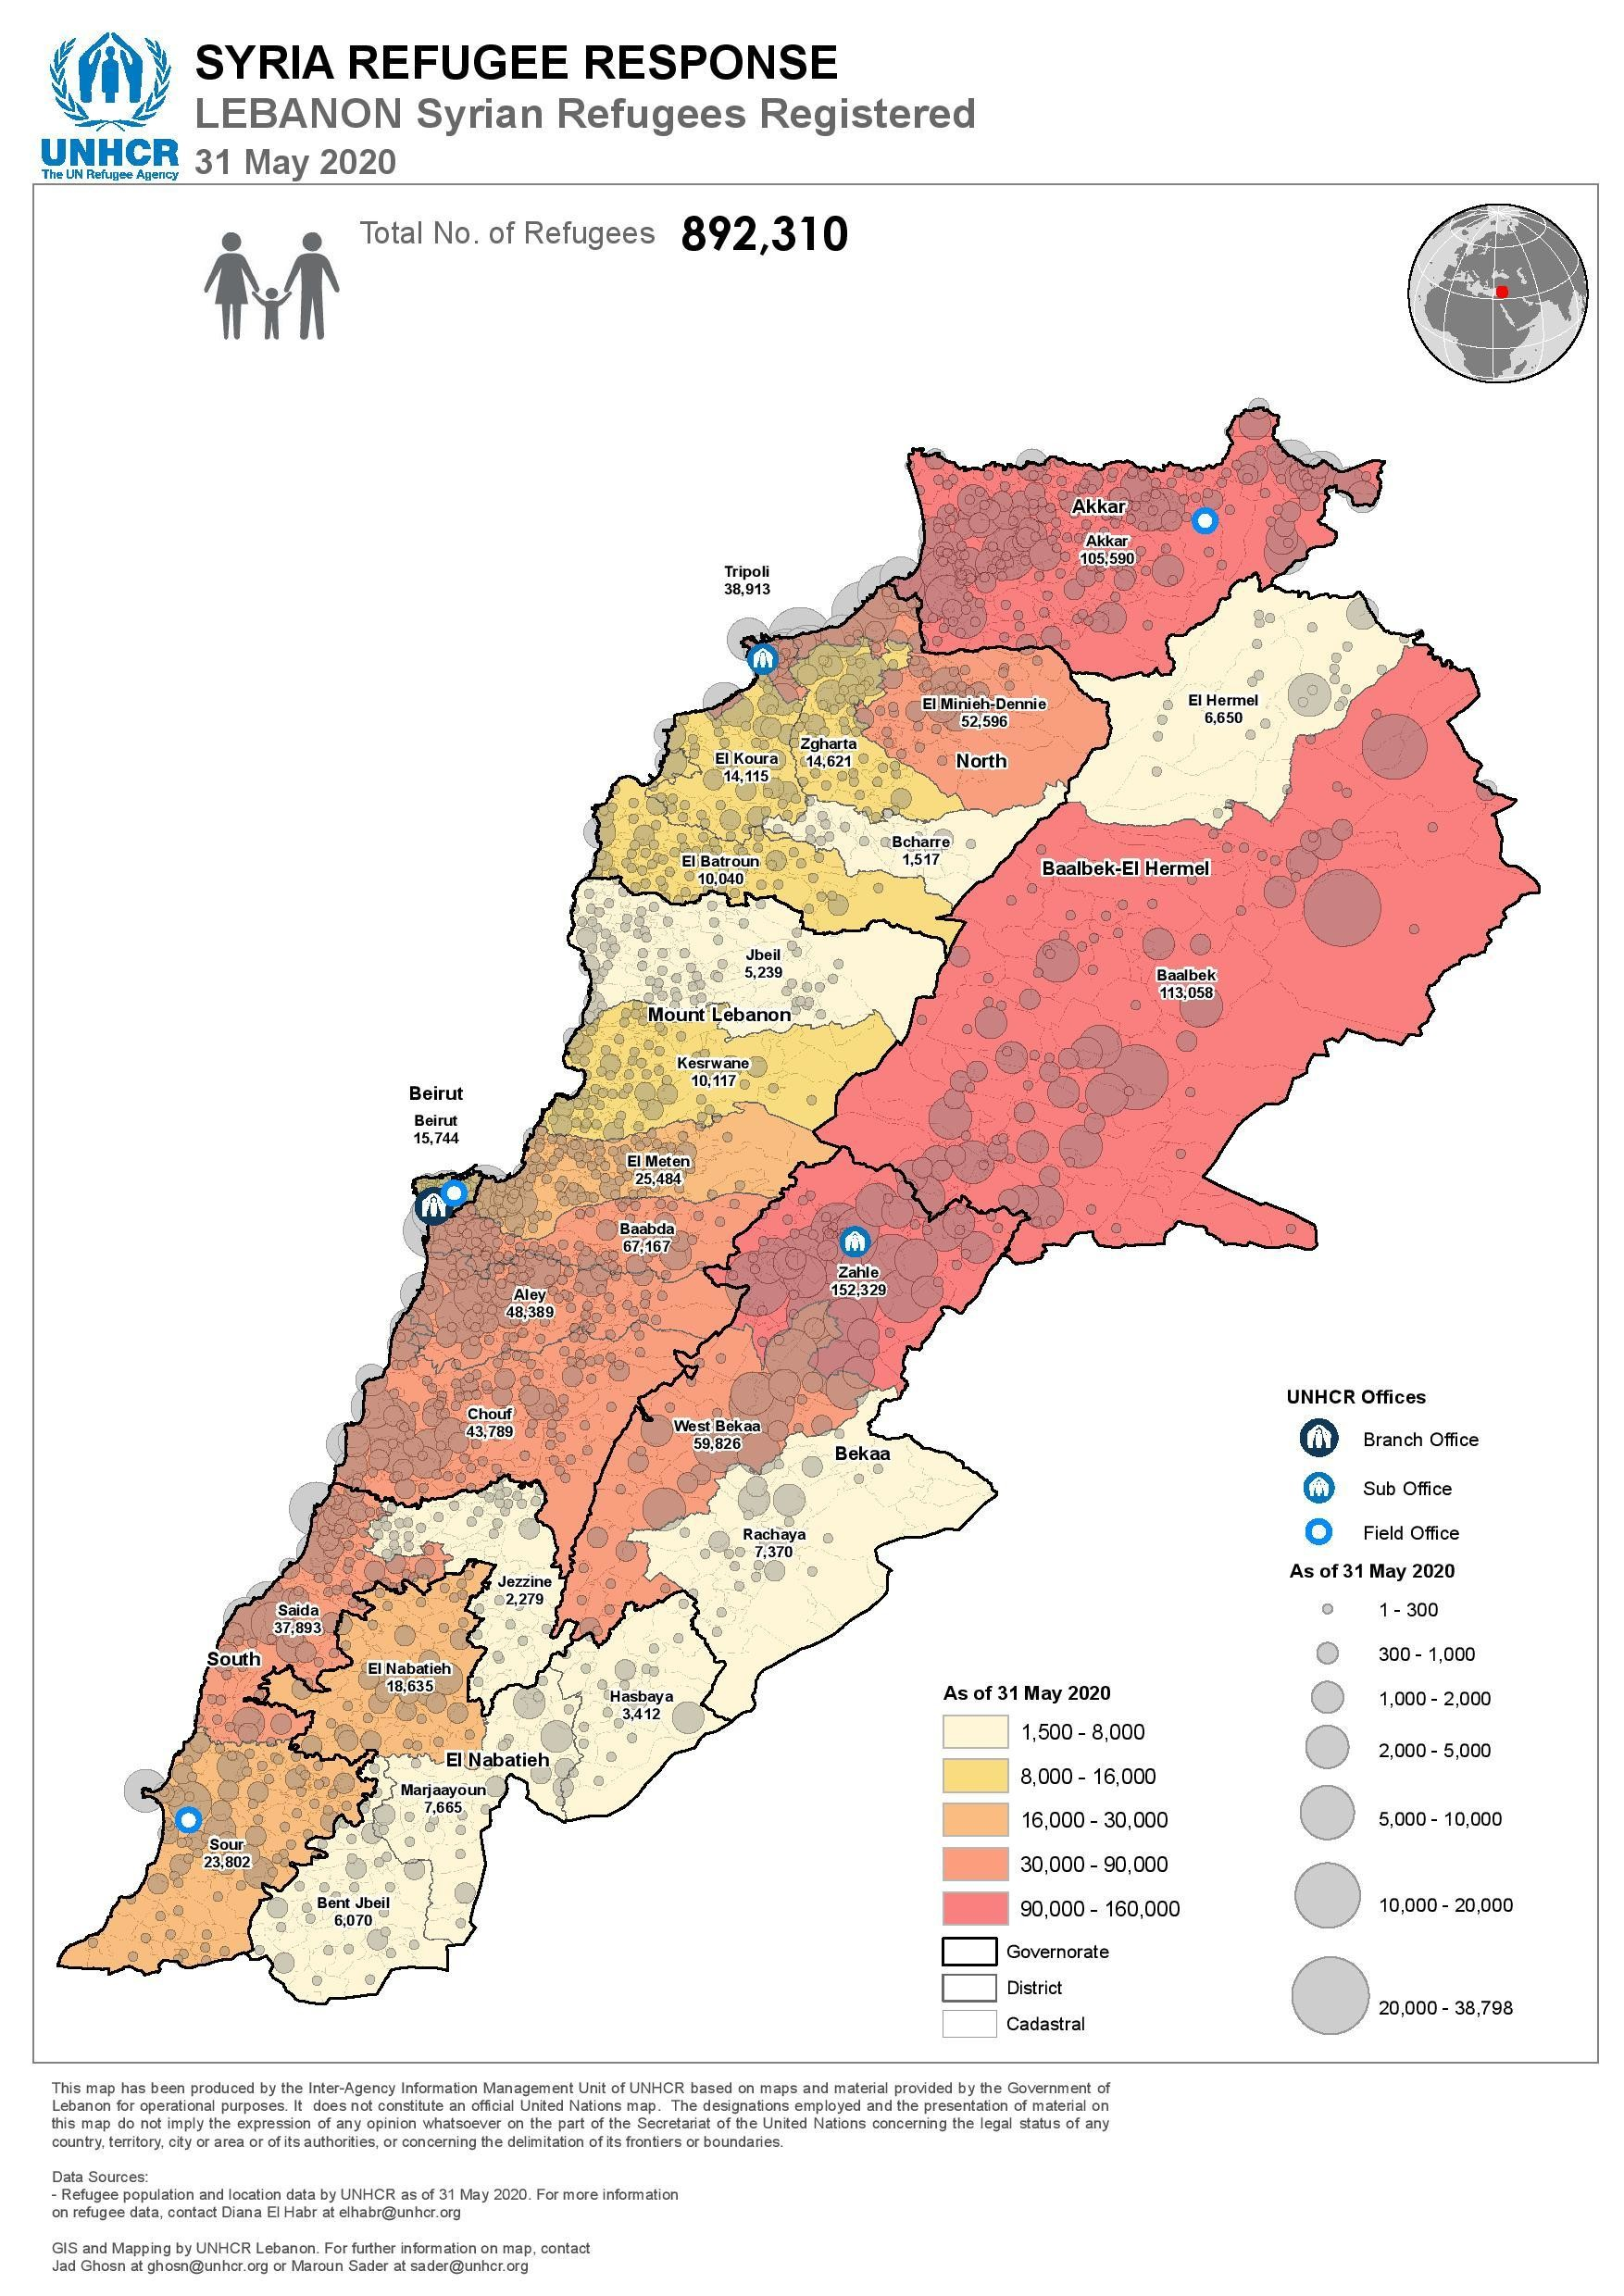 The distribution of Syrian refugees in Lebanon